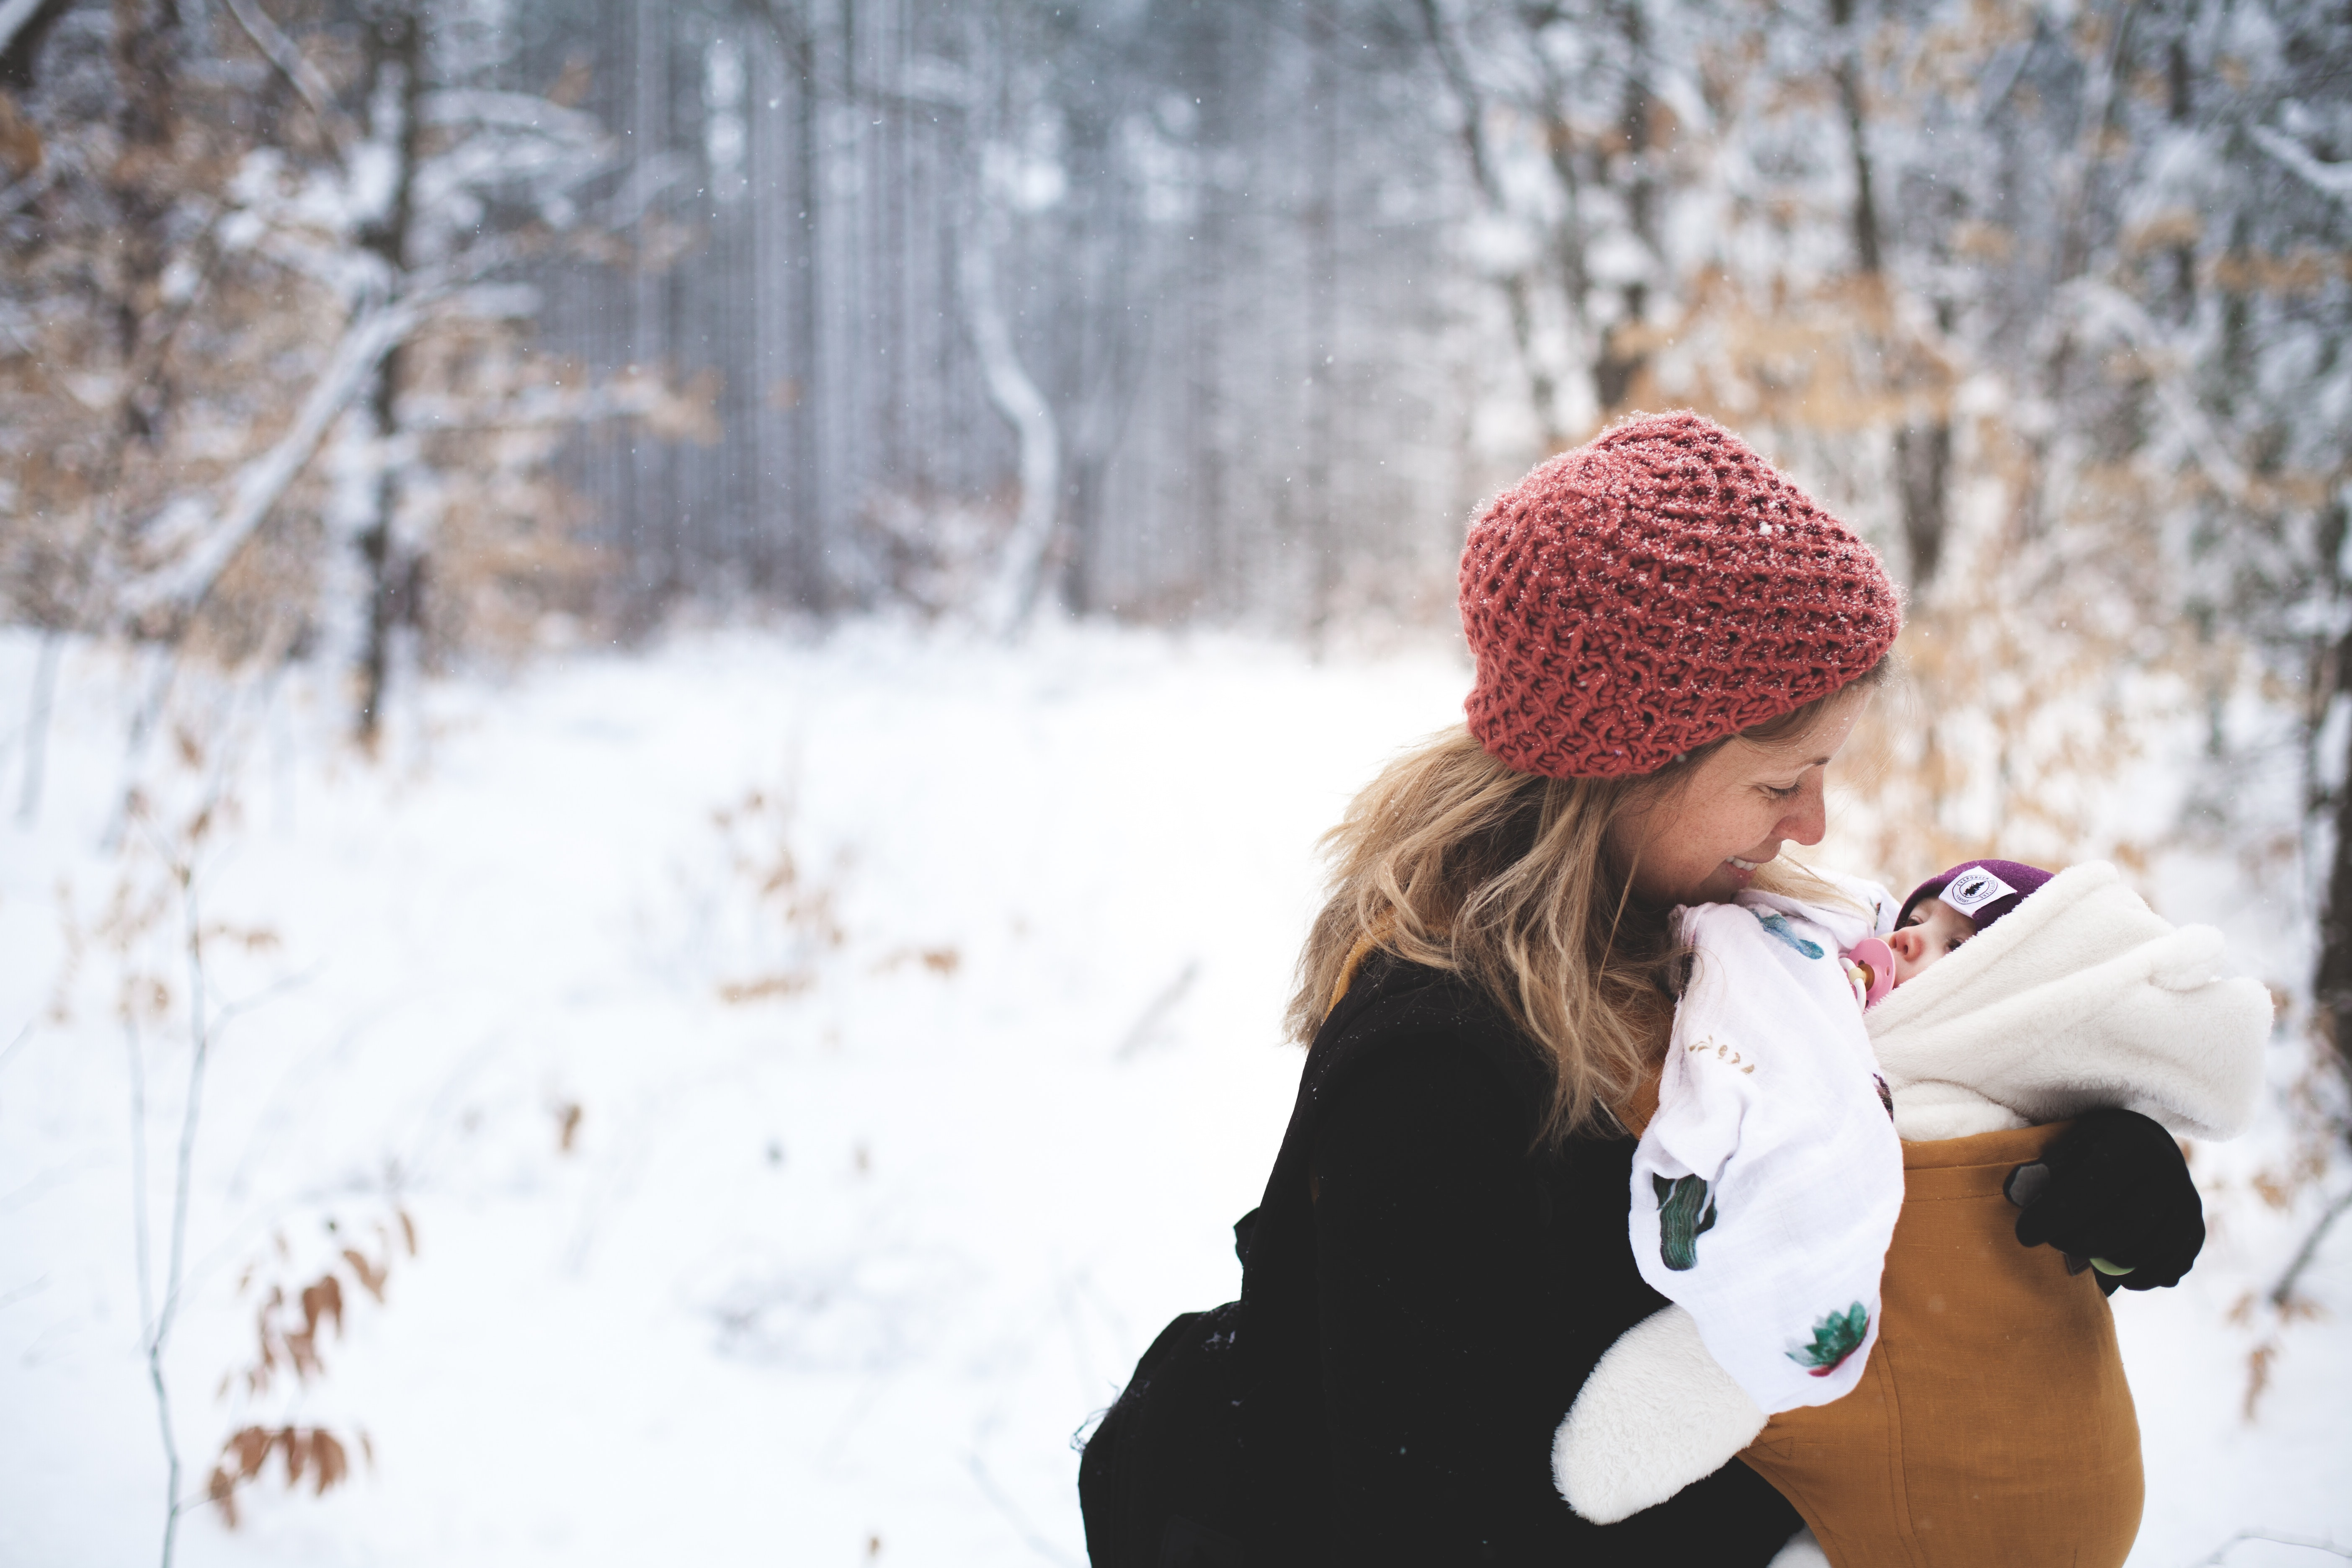 Woman in Red Knitted Cap and Black Top Holding Baby With Brown Carrier, Adult, Season, Mother, Outdoors, HQ Photo